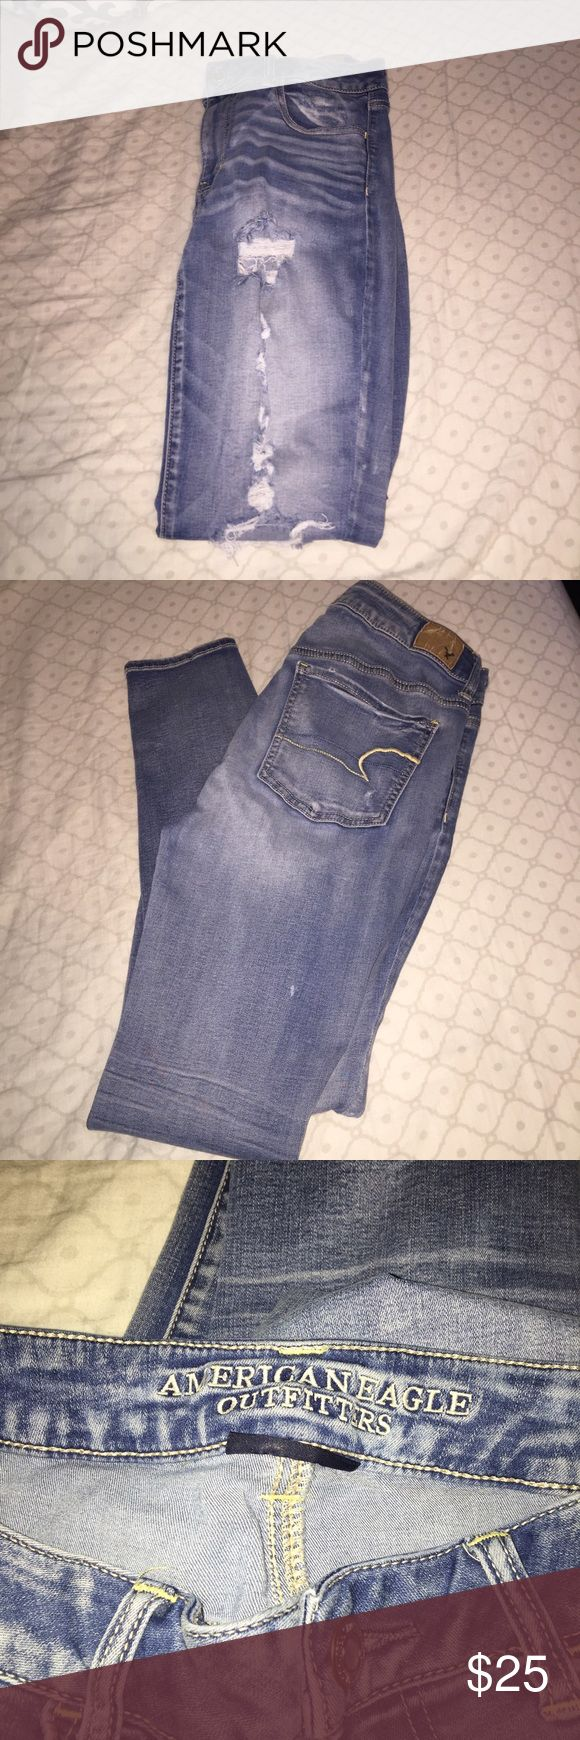 Brand new American Eagle jeans Brand new American Eagle Jeans. Never worn, washed once. No flaws being new. Looking to sell fast so no trades but feel free to make a reasonable offer!!!! If you have any questions or want measurements let me know I reply within 24 hours!!! Happy poshing 😊🎉 American Eagle Outfitters Jeans Skinny